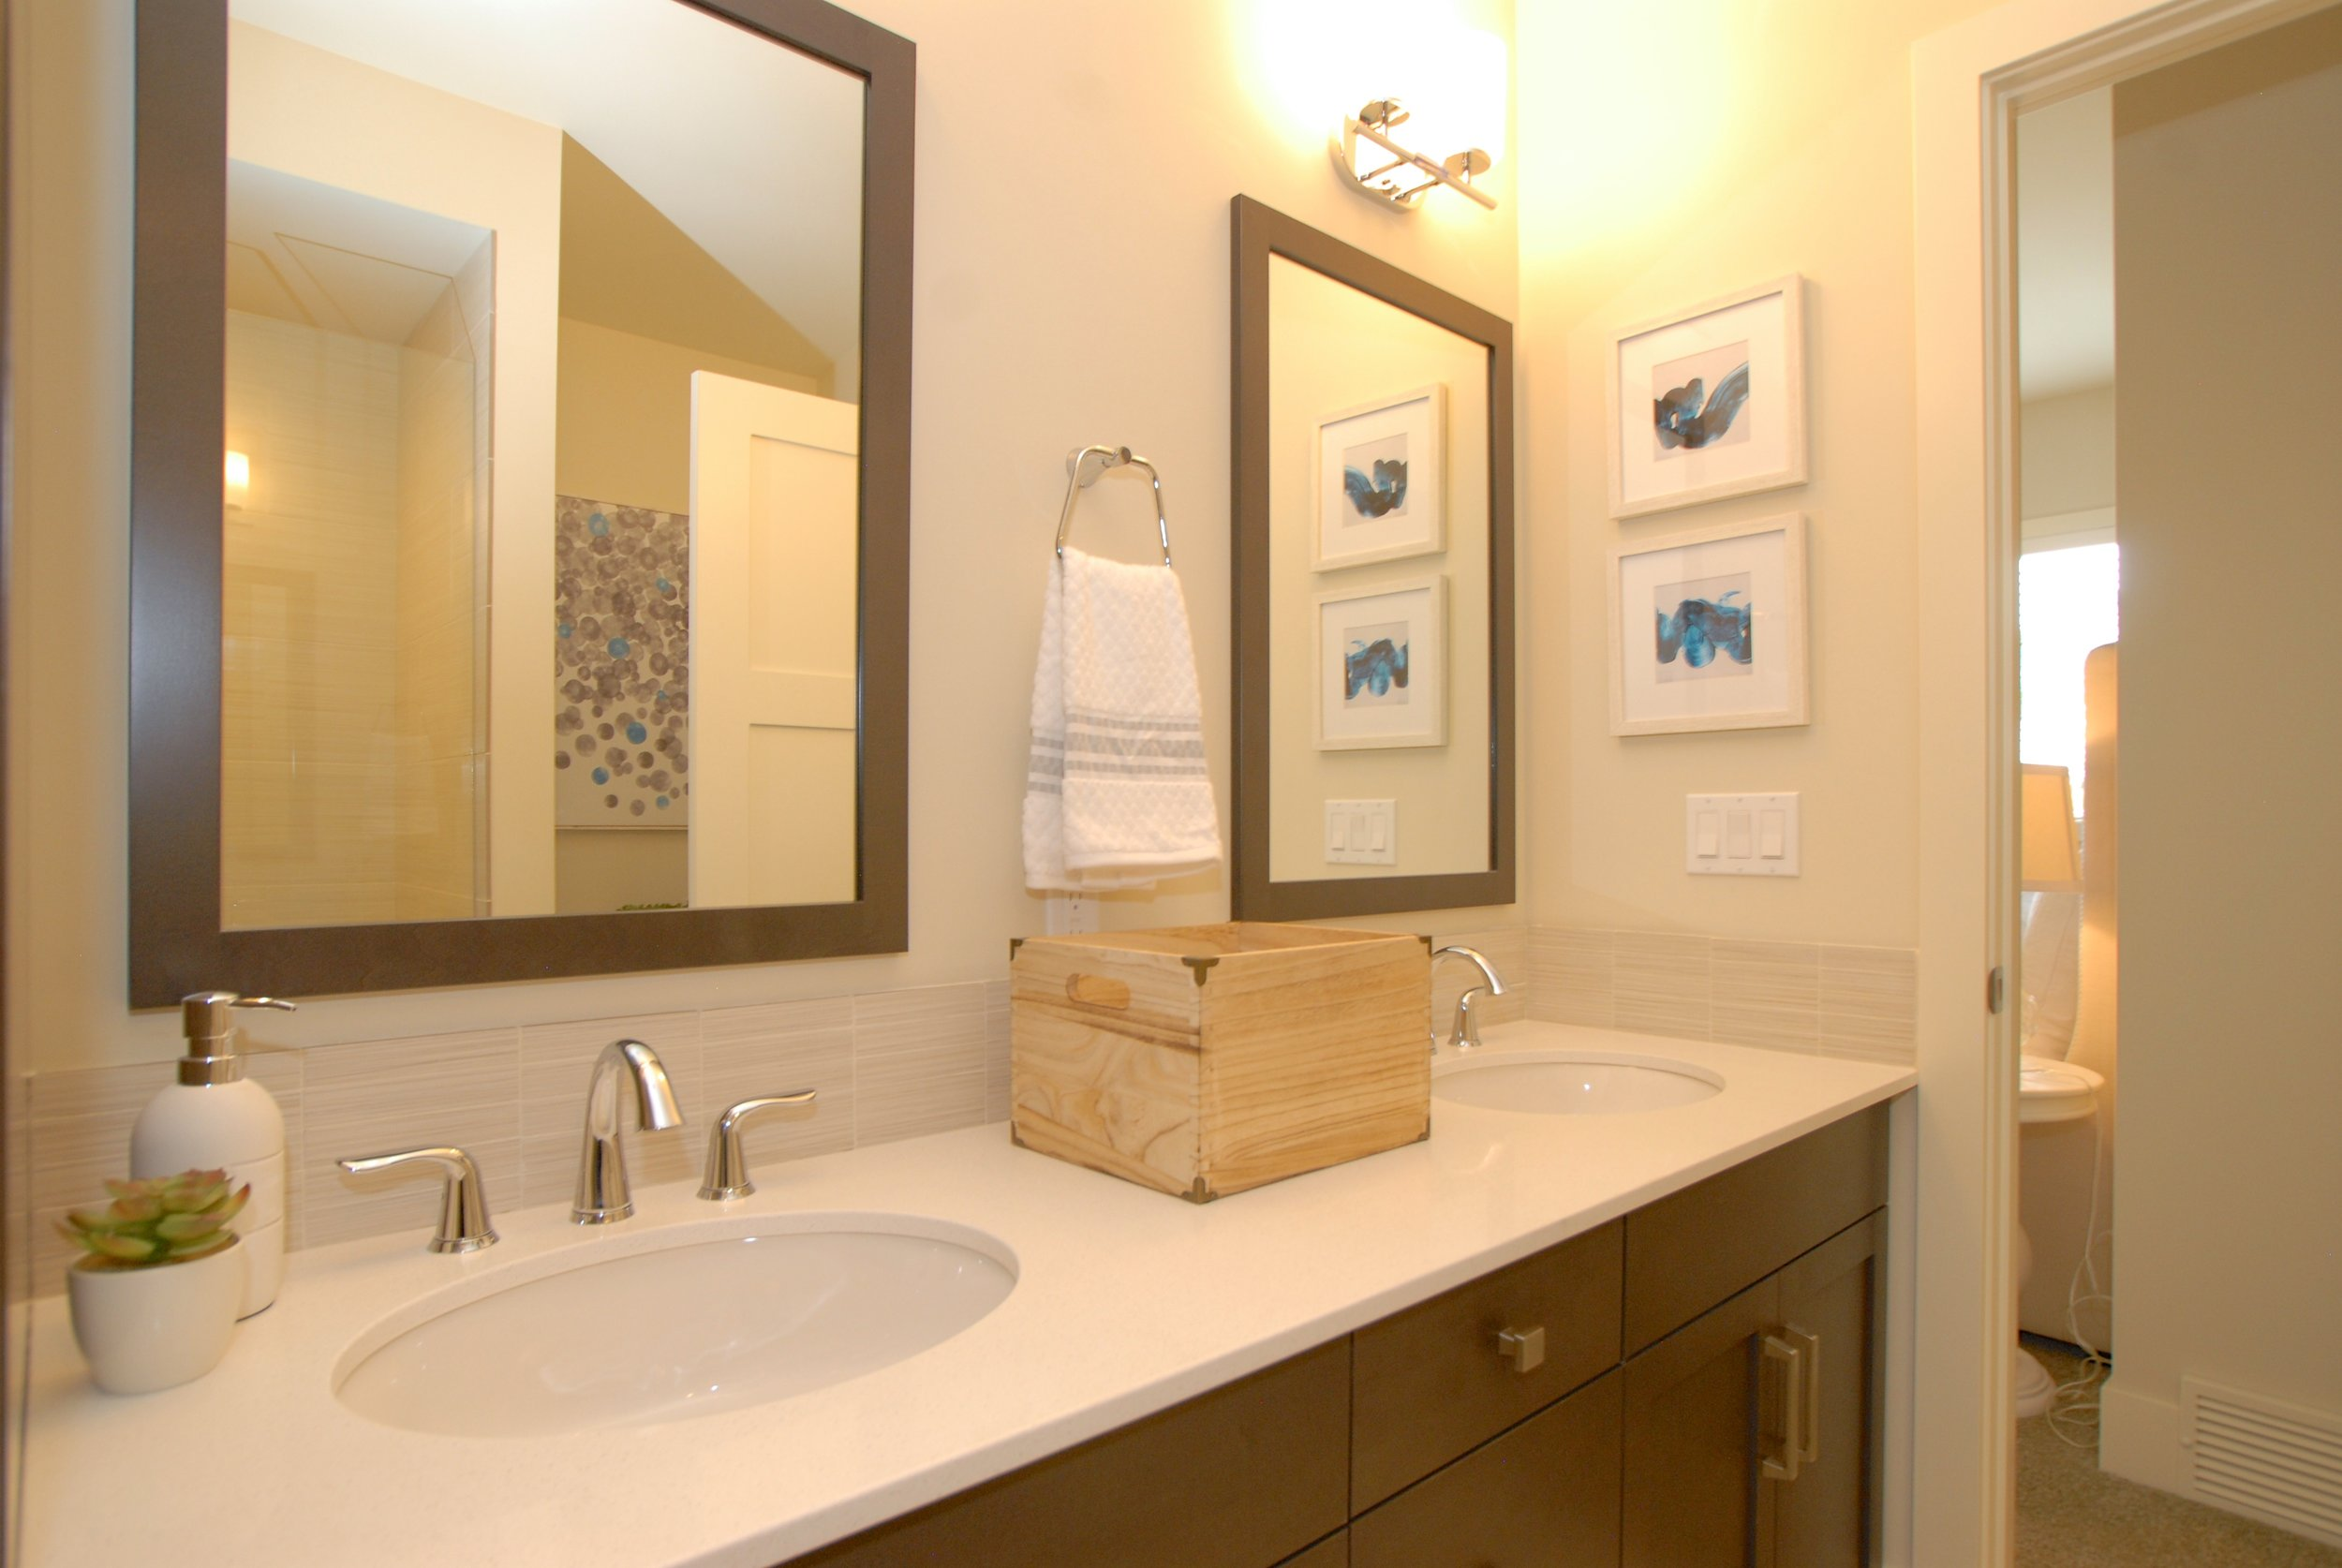 Stylish wood frame vanity mirrors